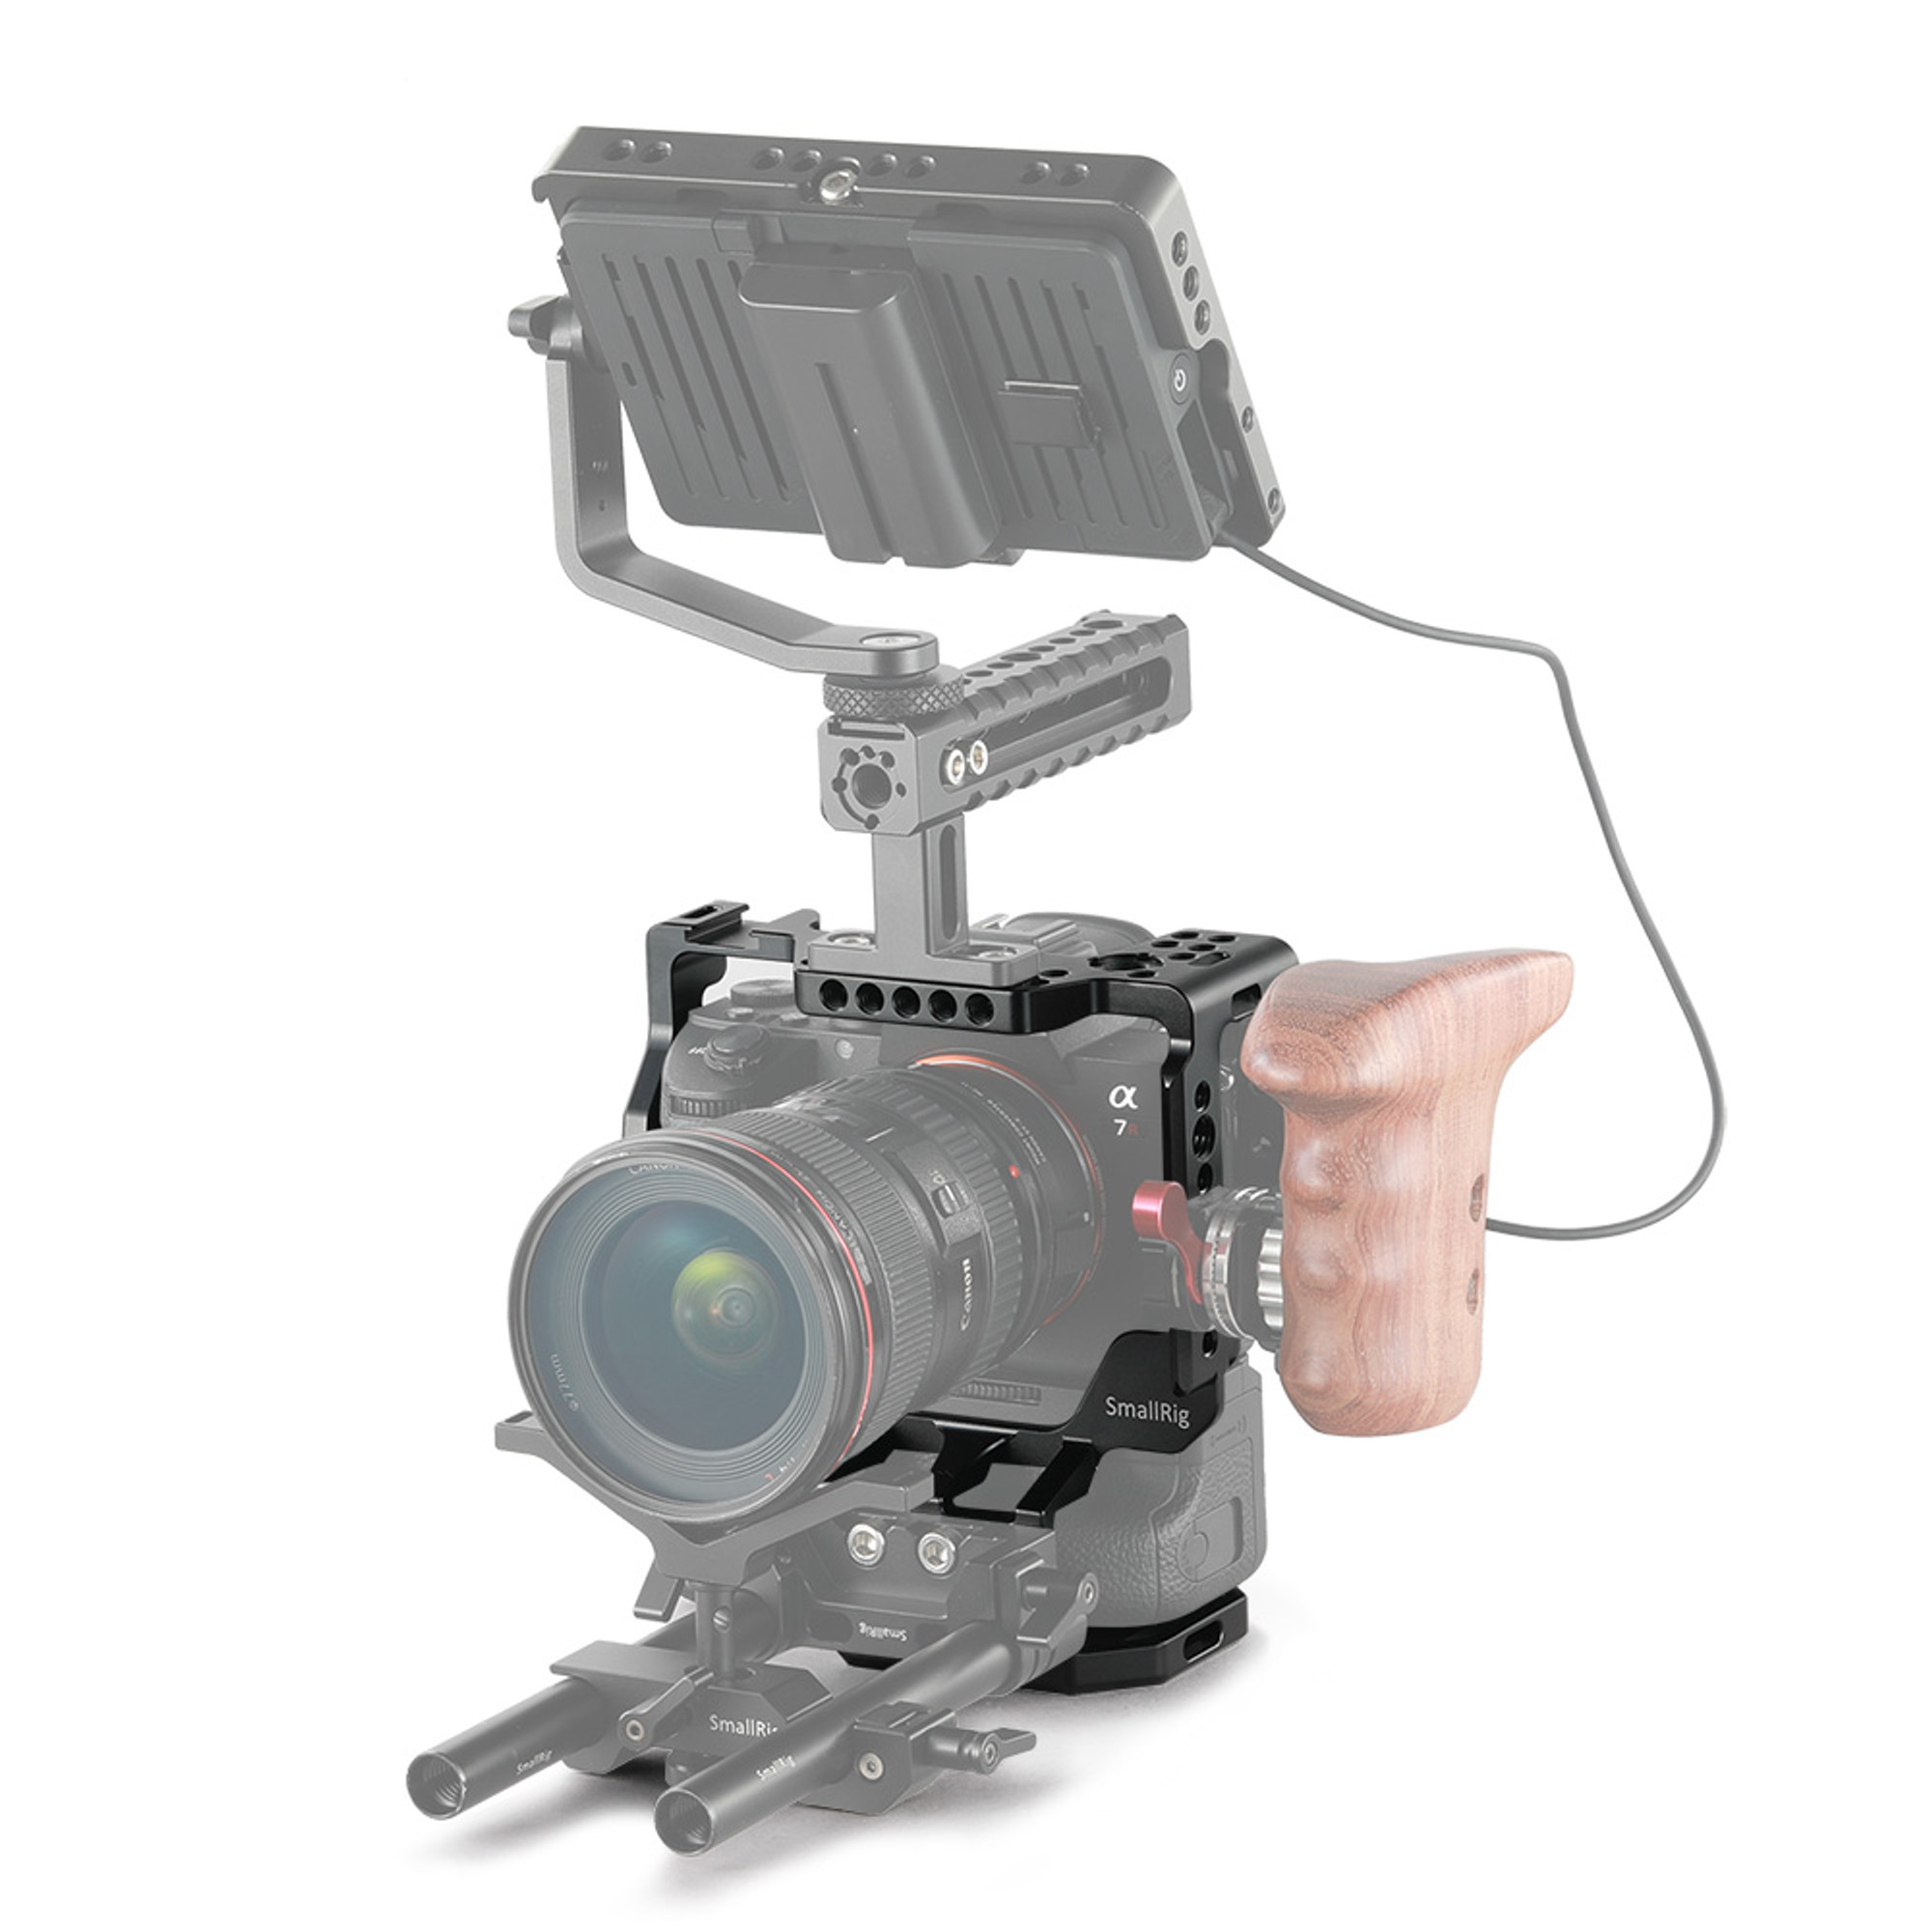 ... SmallRig Cage for Sony A7RIII/A7M3/A7III with VG-C3EM Vertical Grip 2176